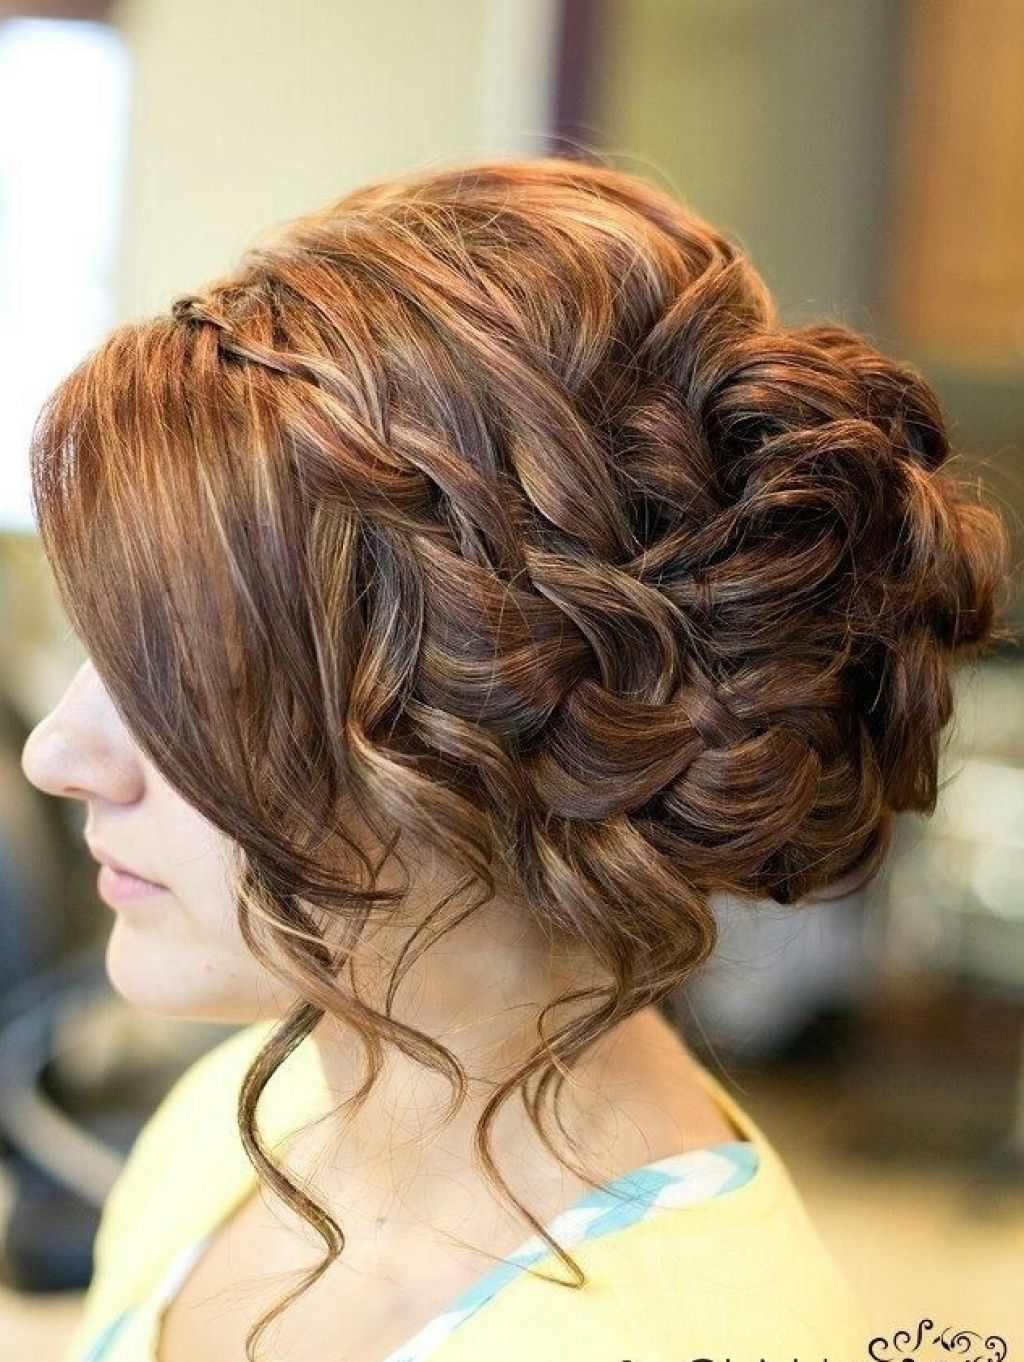 Lockere Hochzeitsfrisuren 14 Prom Hairstyles For Long Hair That Are Simply Adorable